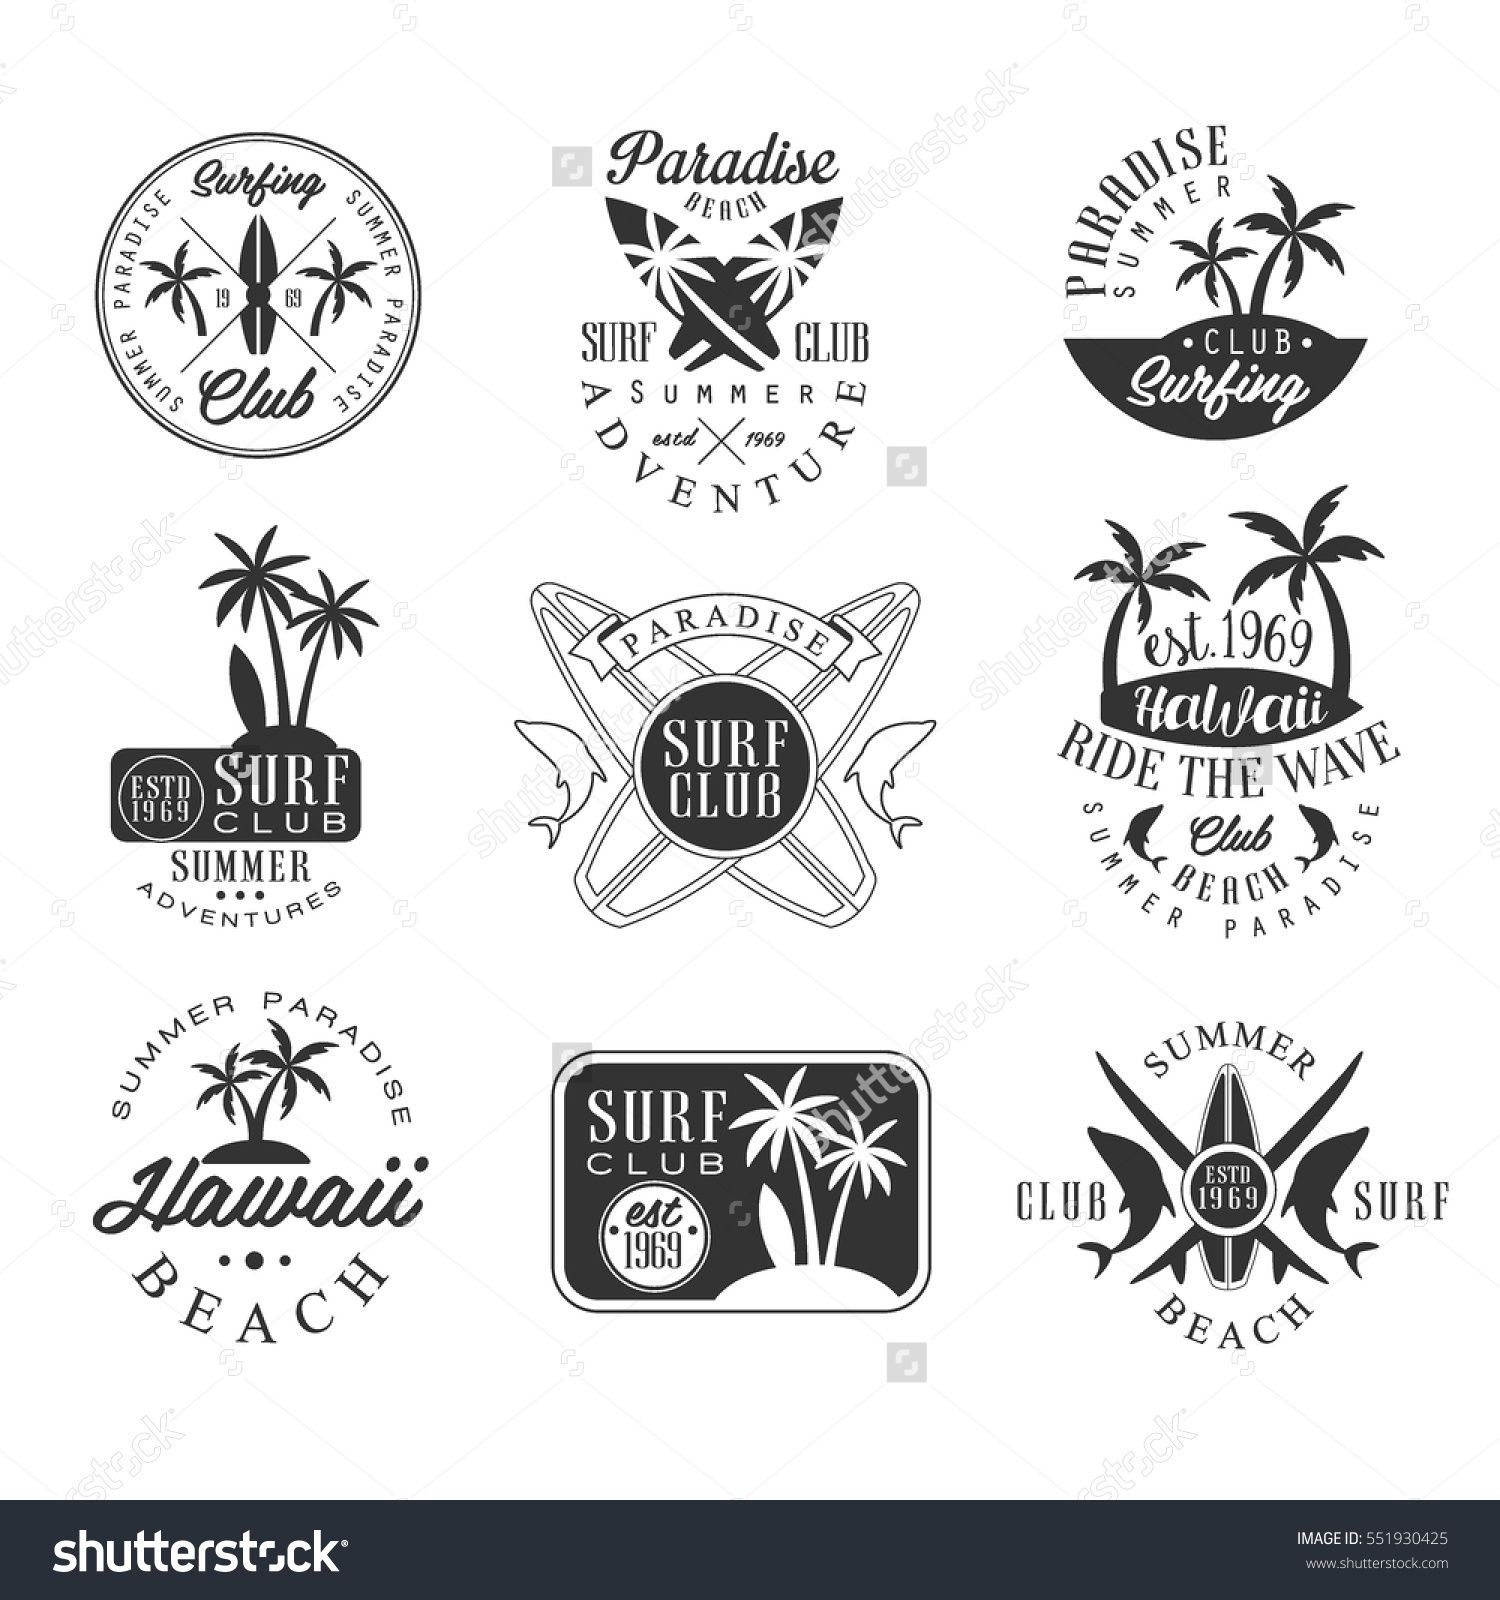 summer vacation in hawaii black and white sign design templates with text and tools silhouettes